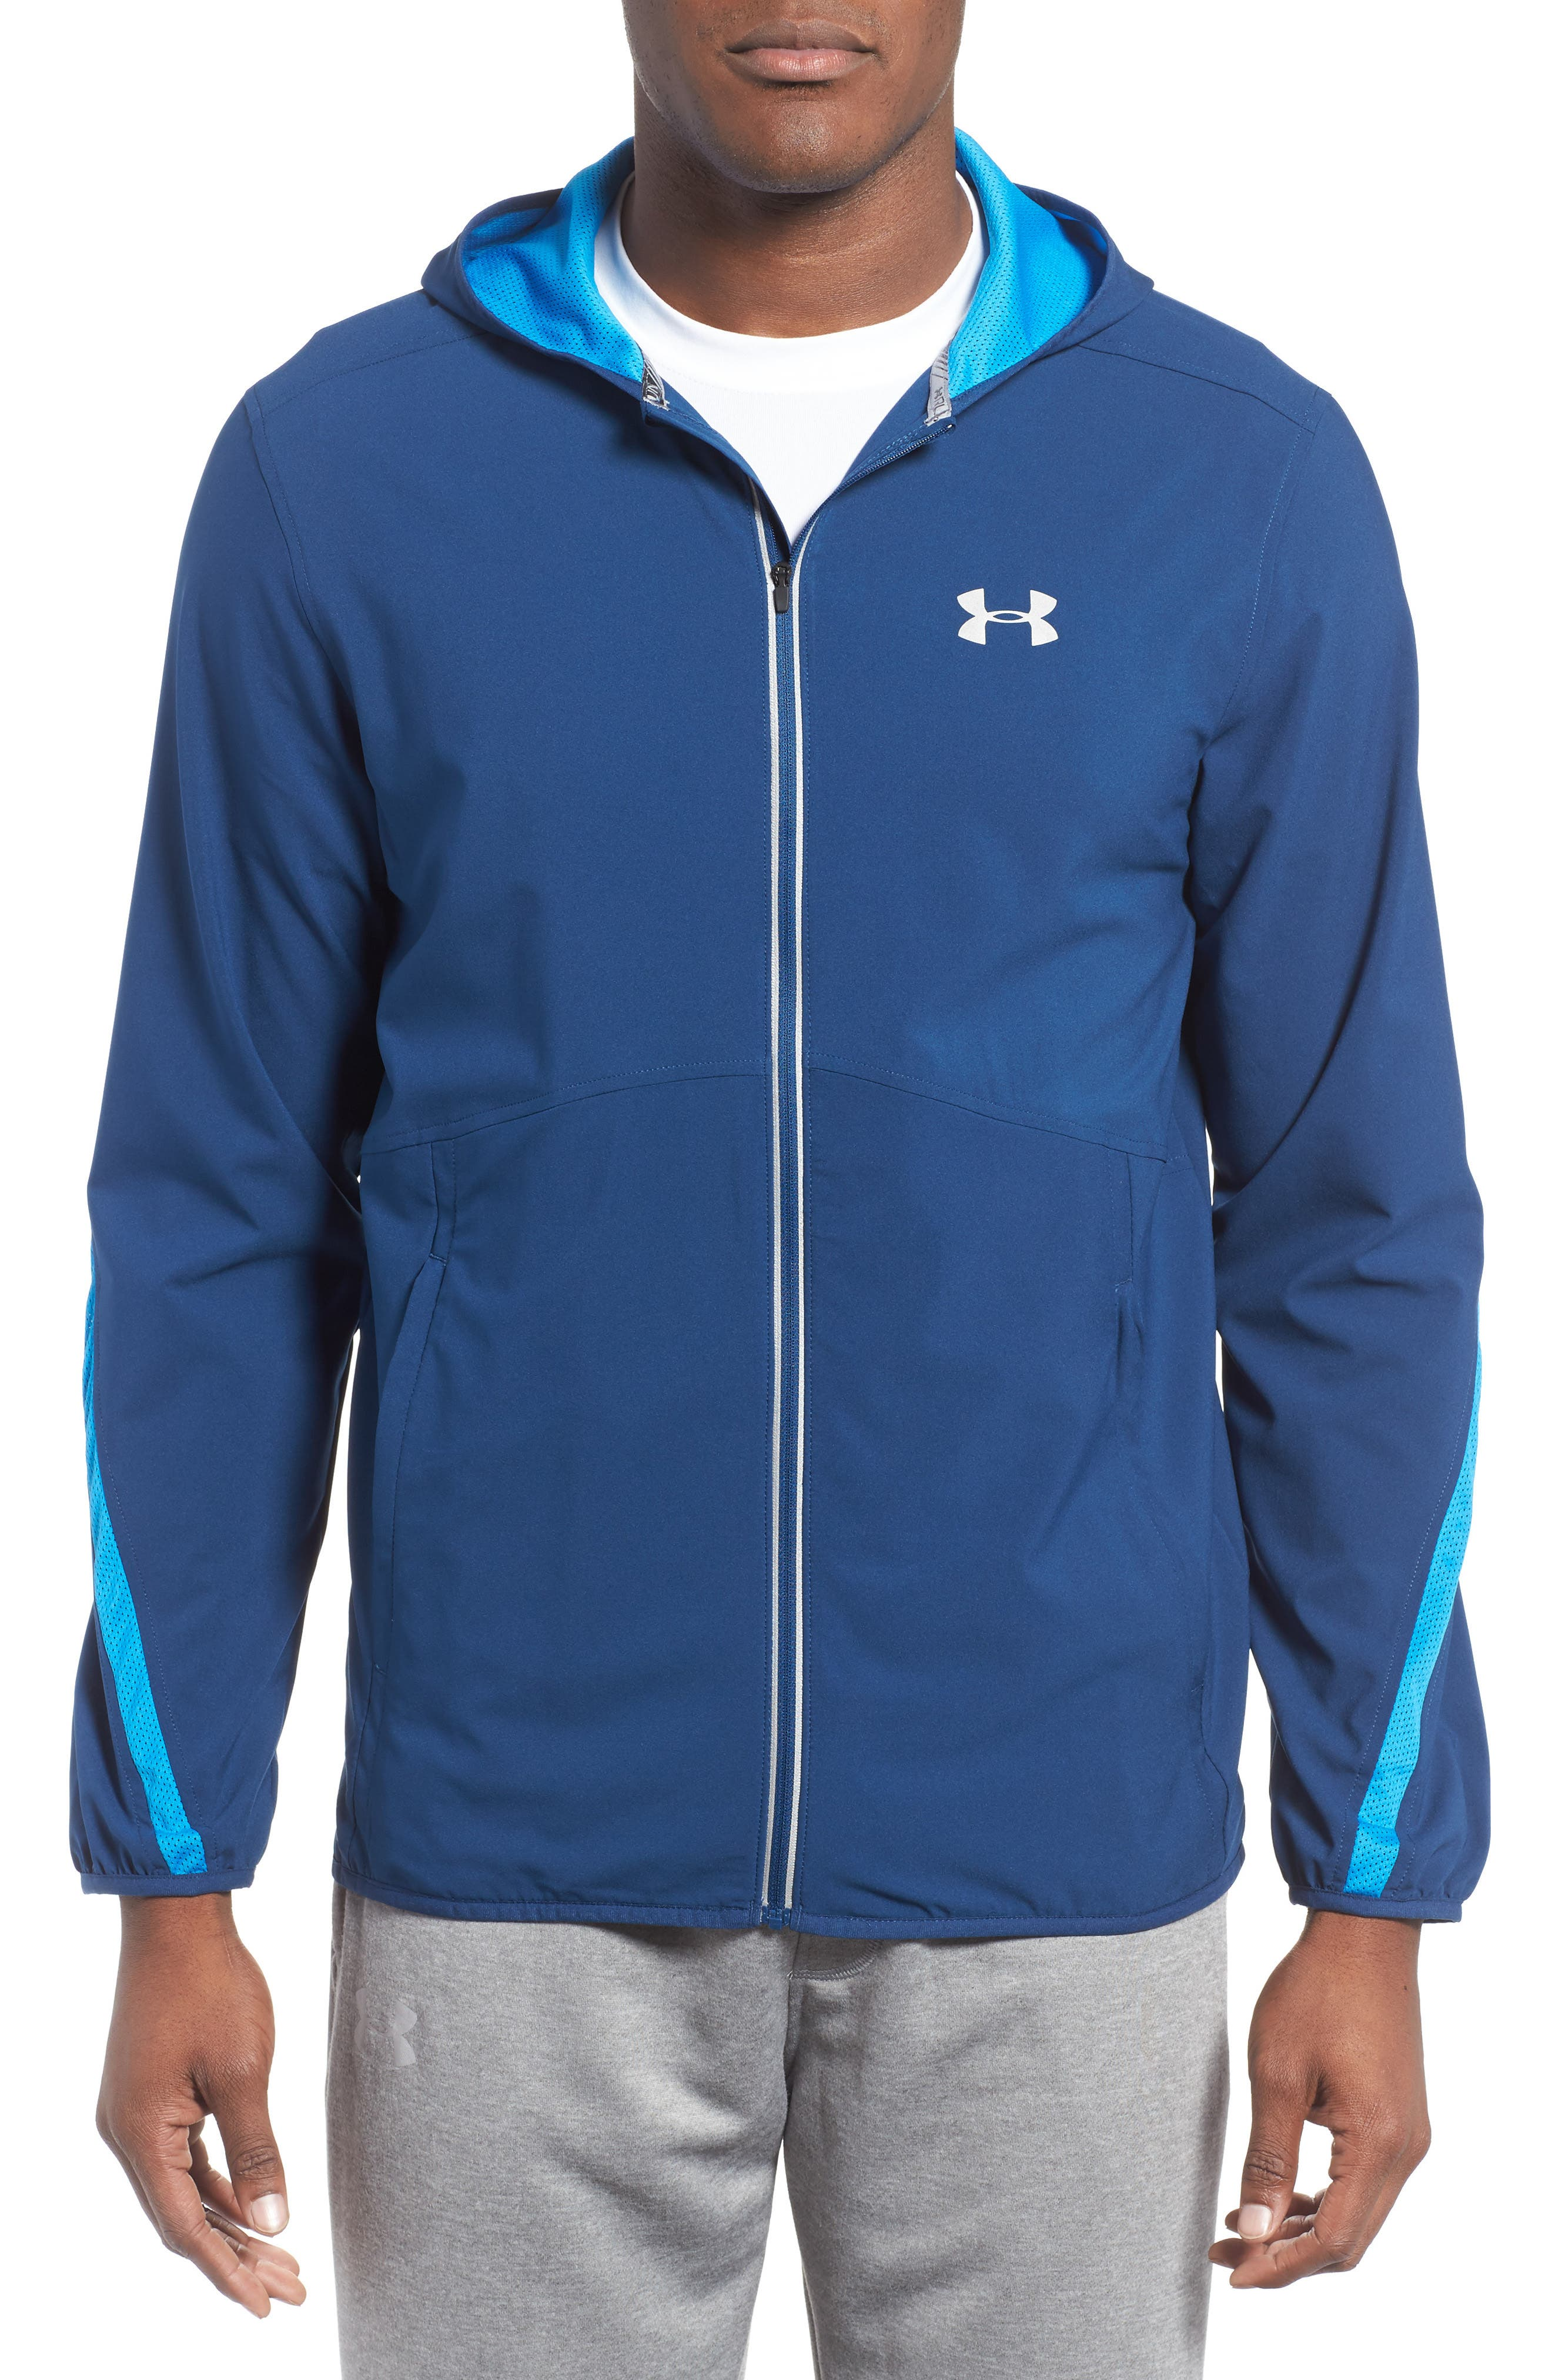 Alternate Image 1 Selected - Under Armour Run True Jacket